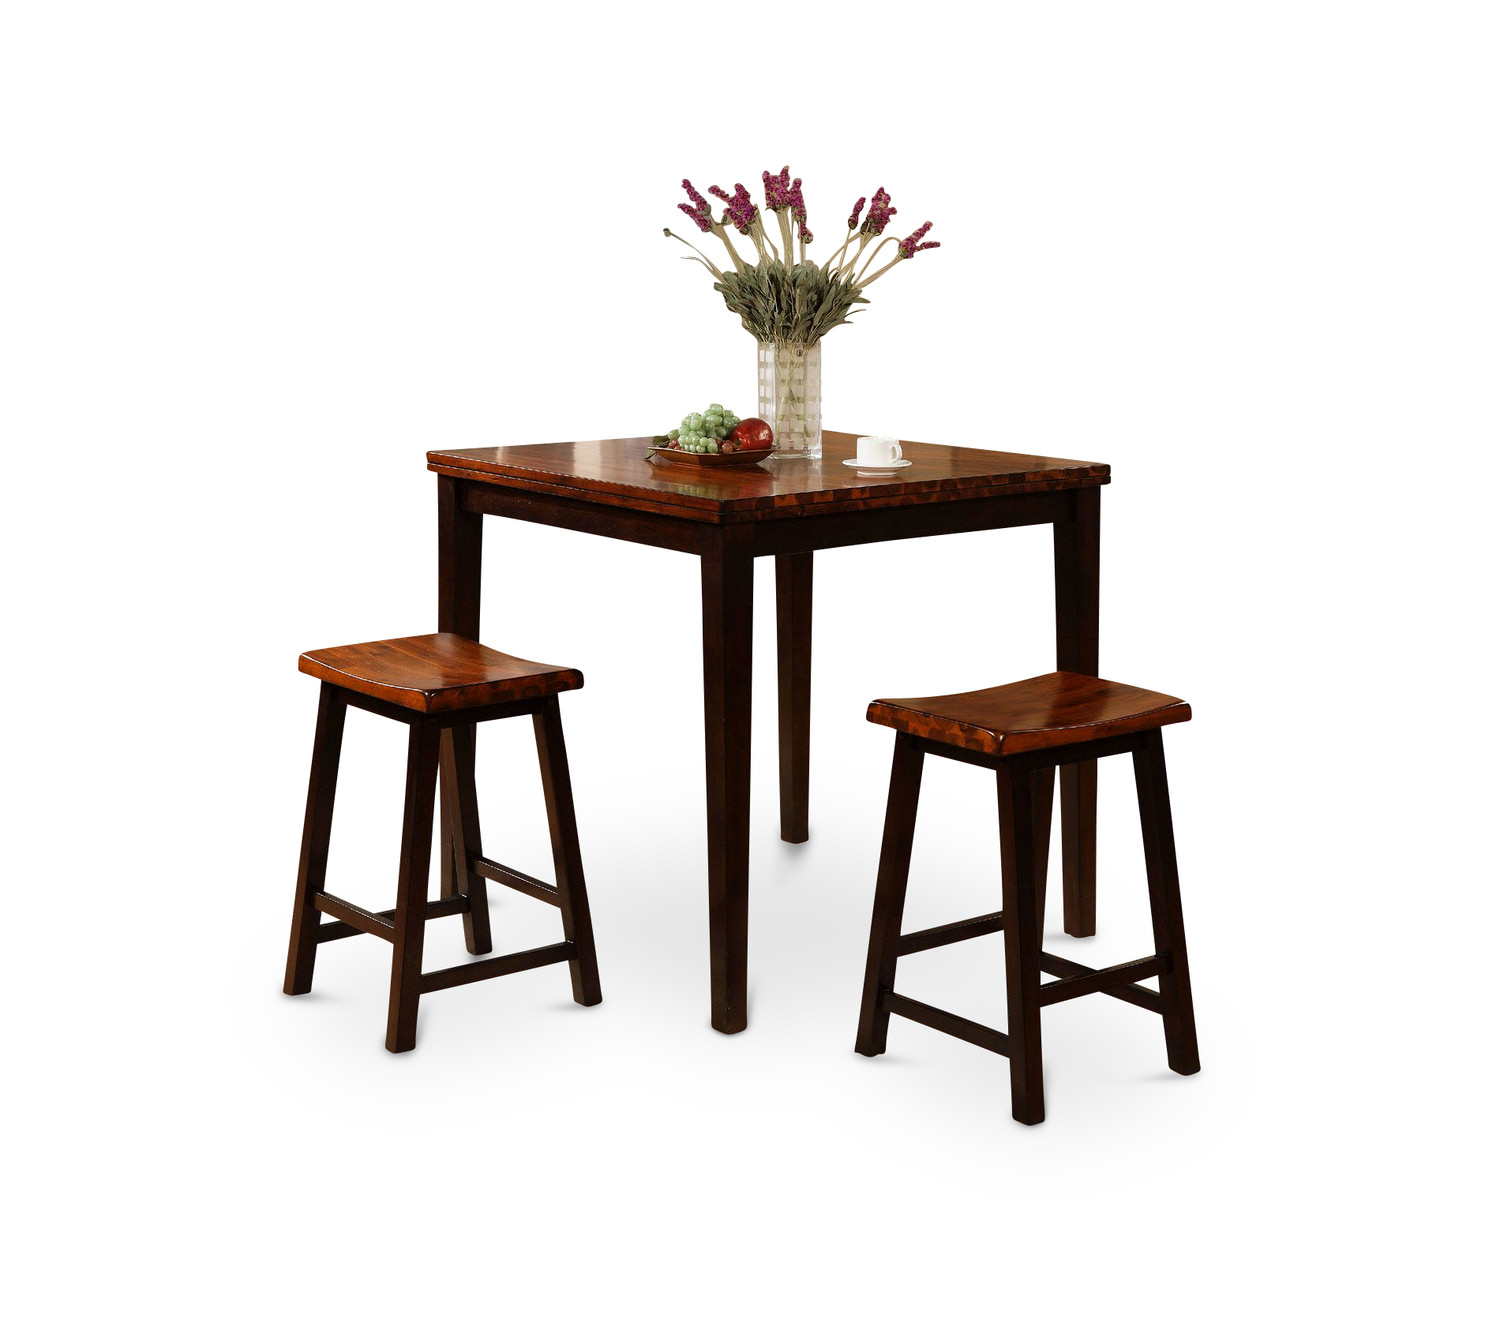 Acacia Table With 2 Stools